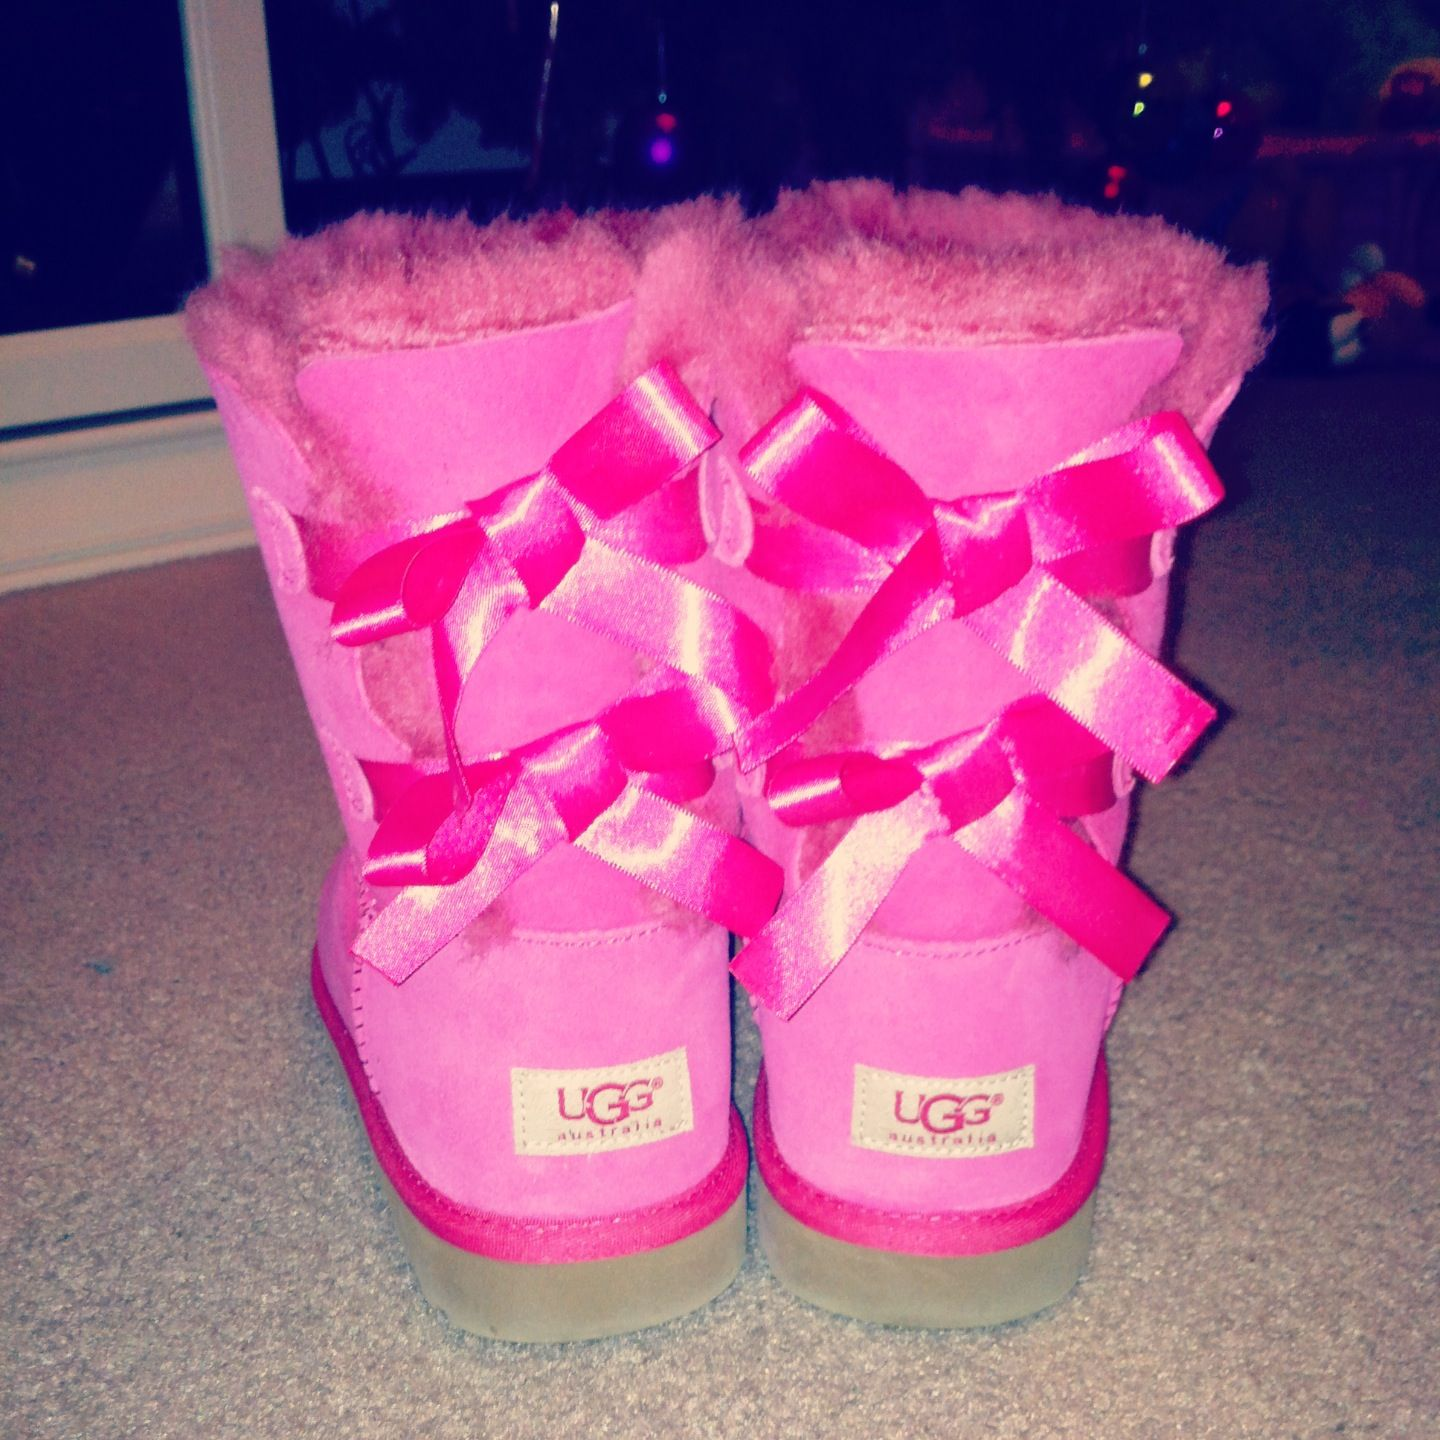 Pink cuter then hell ugg boots! :) i was gonna get them for X-mas but they didnt have my size :(